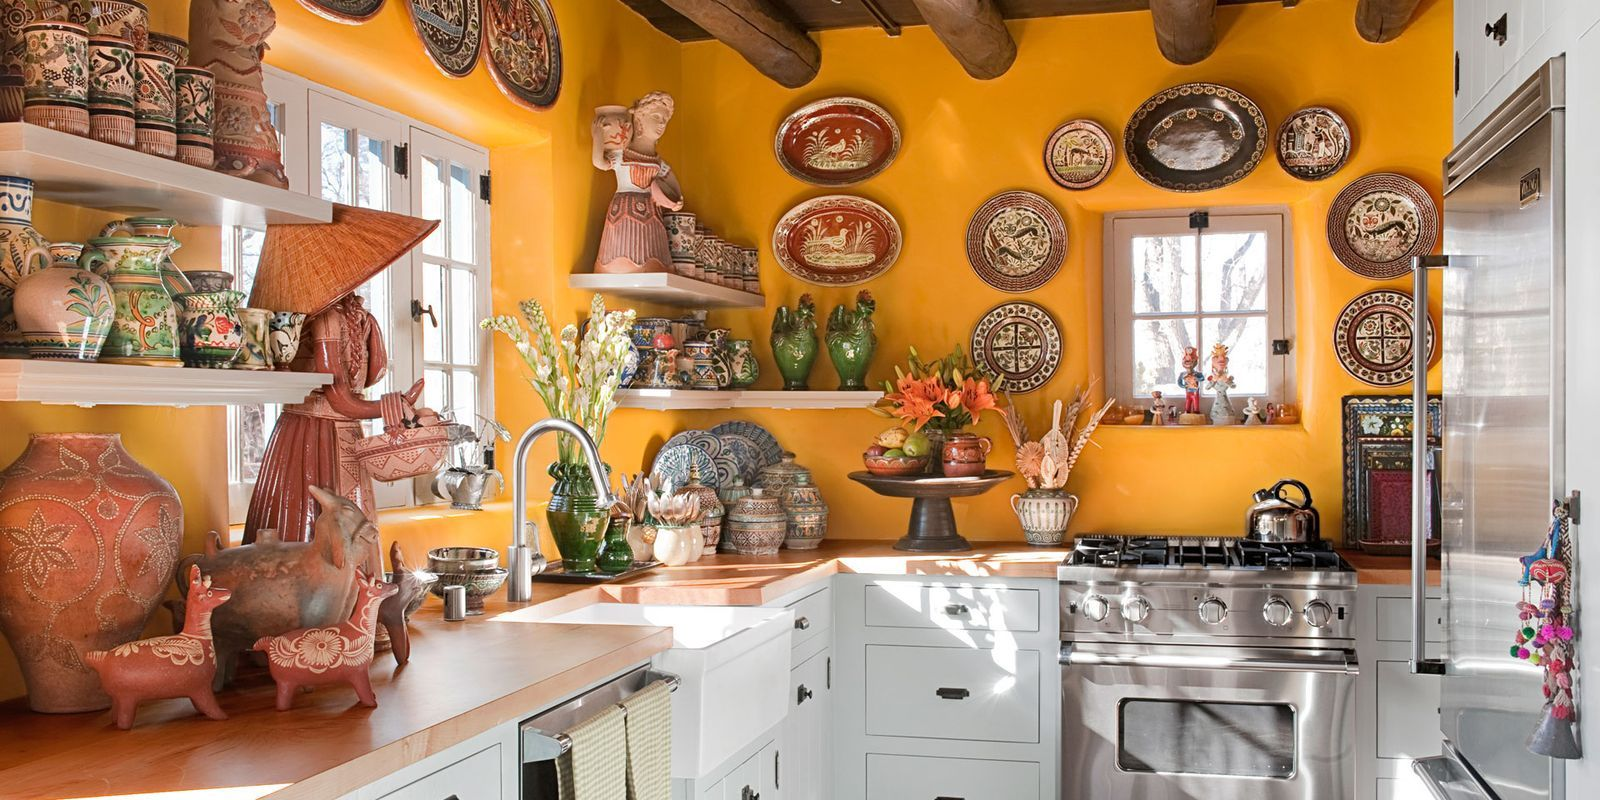 An Inviting, Traditional Adobe Kitchen With Santa Fe Style